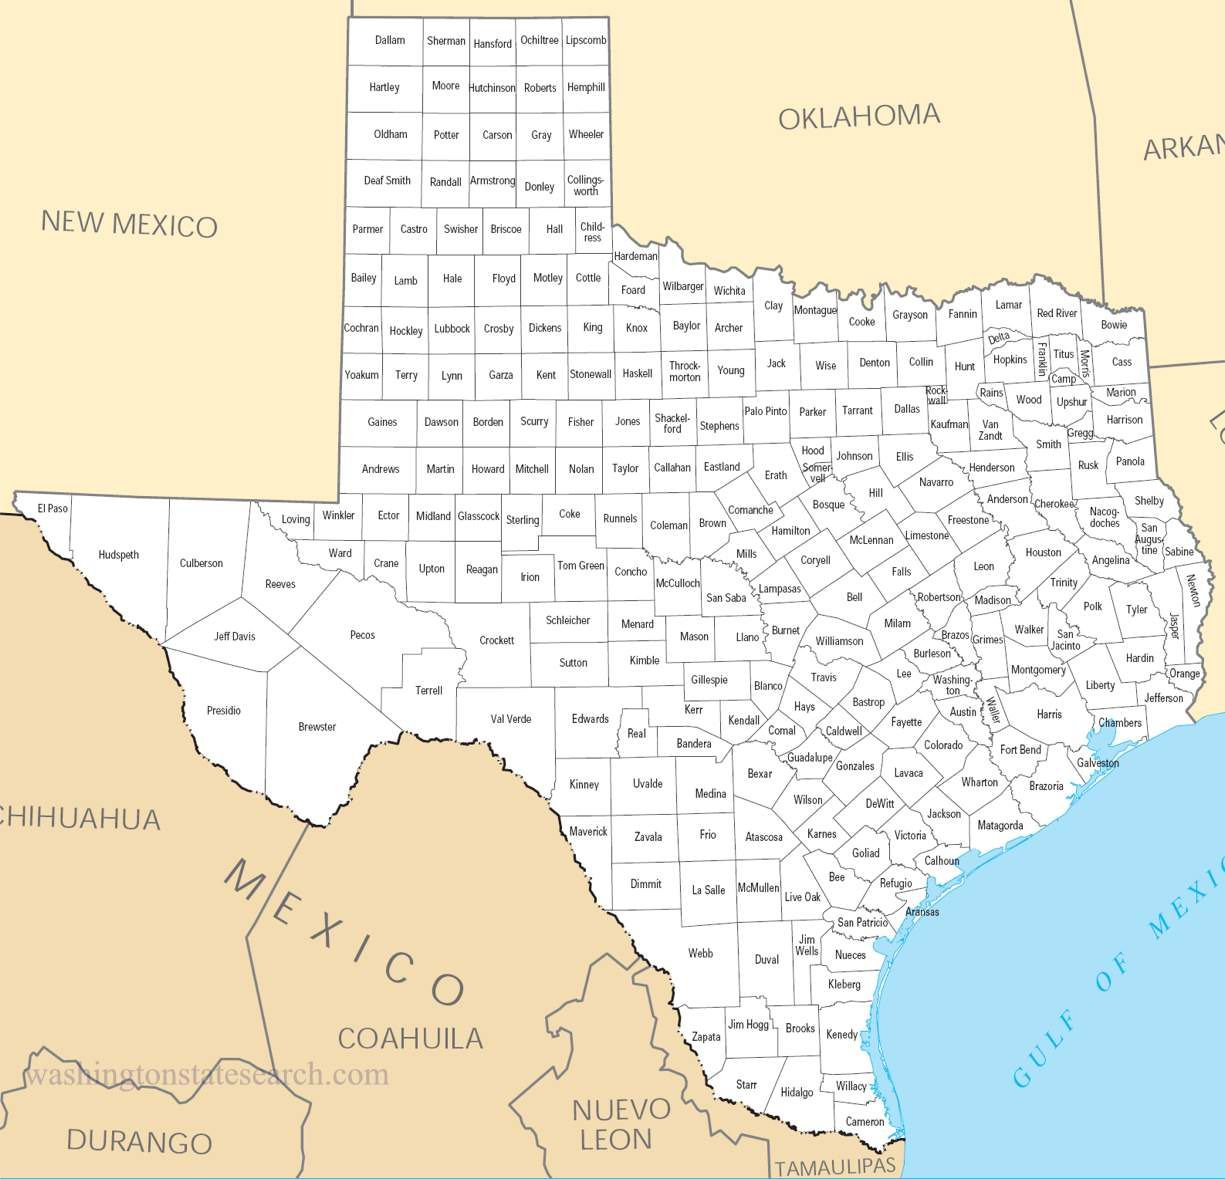 Printable Map Of Texas Counties.R Just Had A Very Hard Time With A Tx Geography Exercise B C